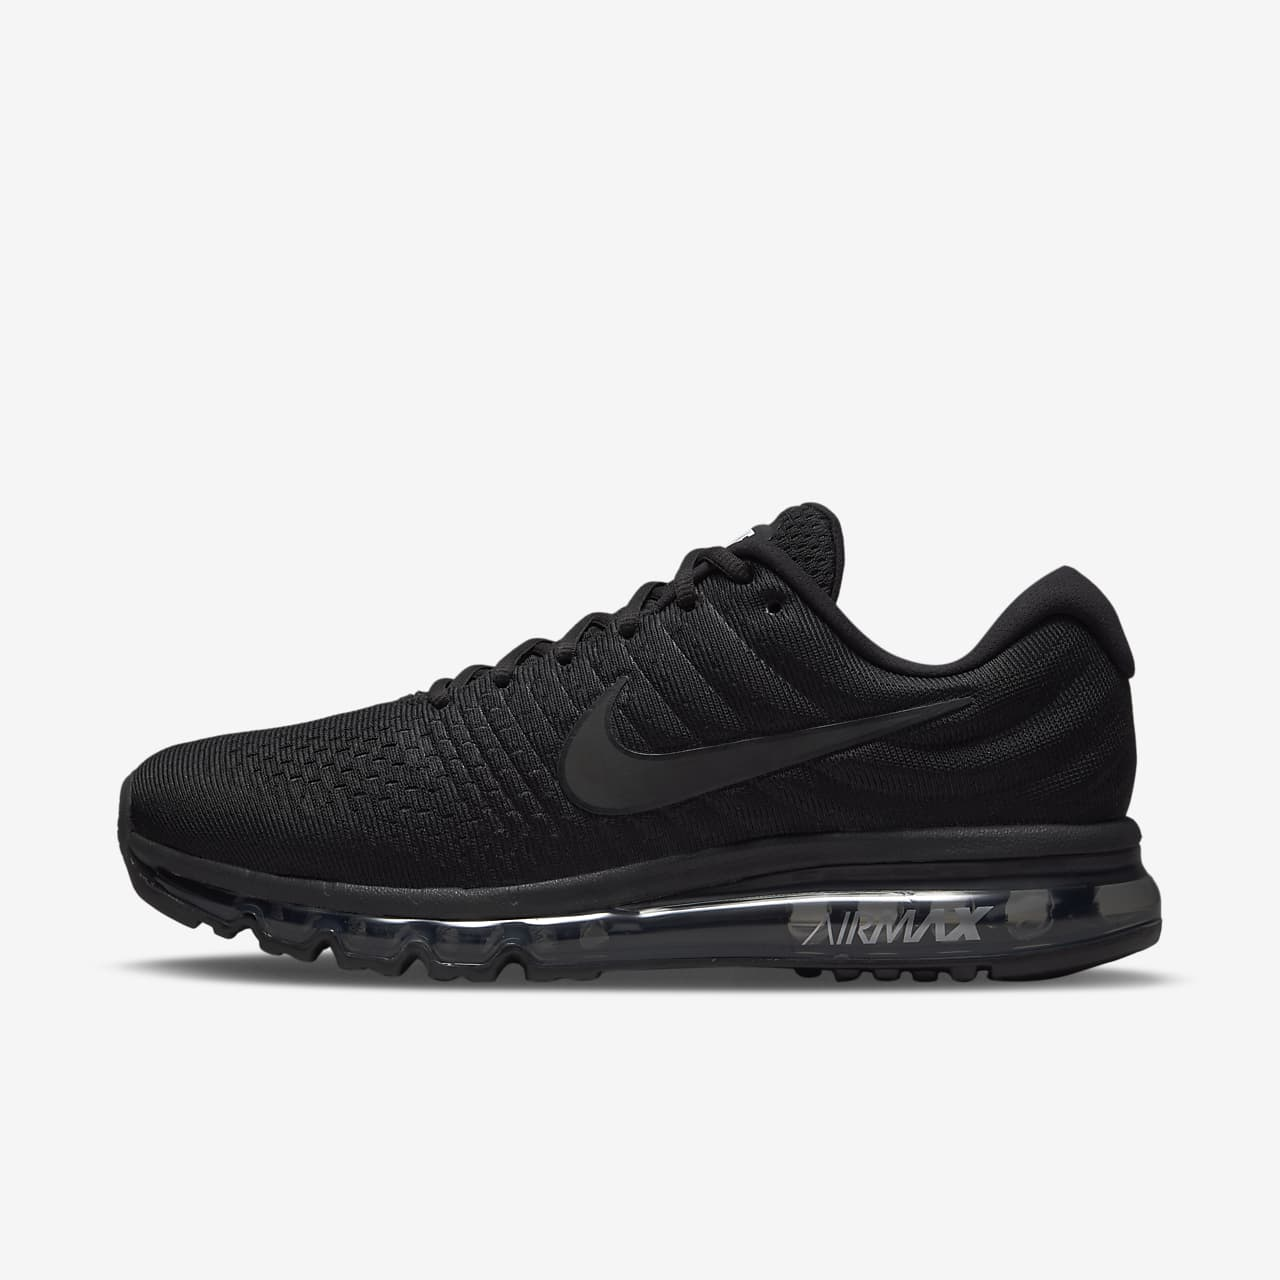 nike air max 2017 men's running shoe nz